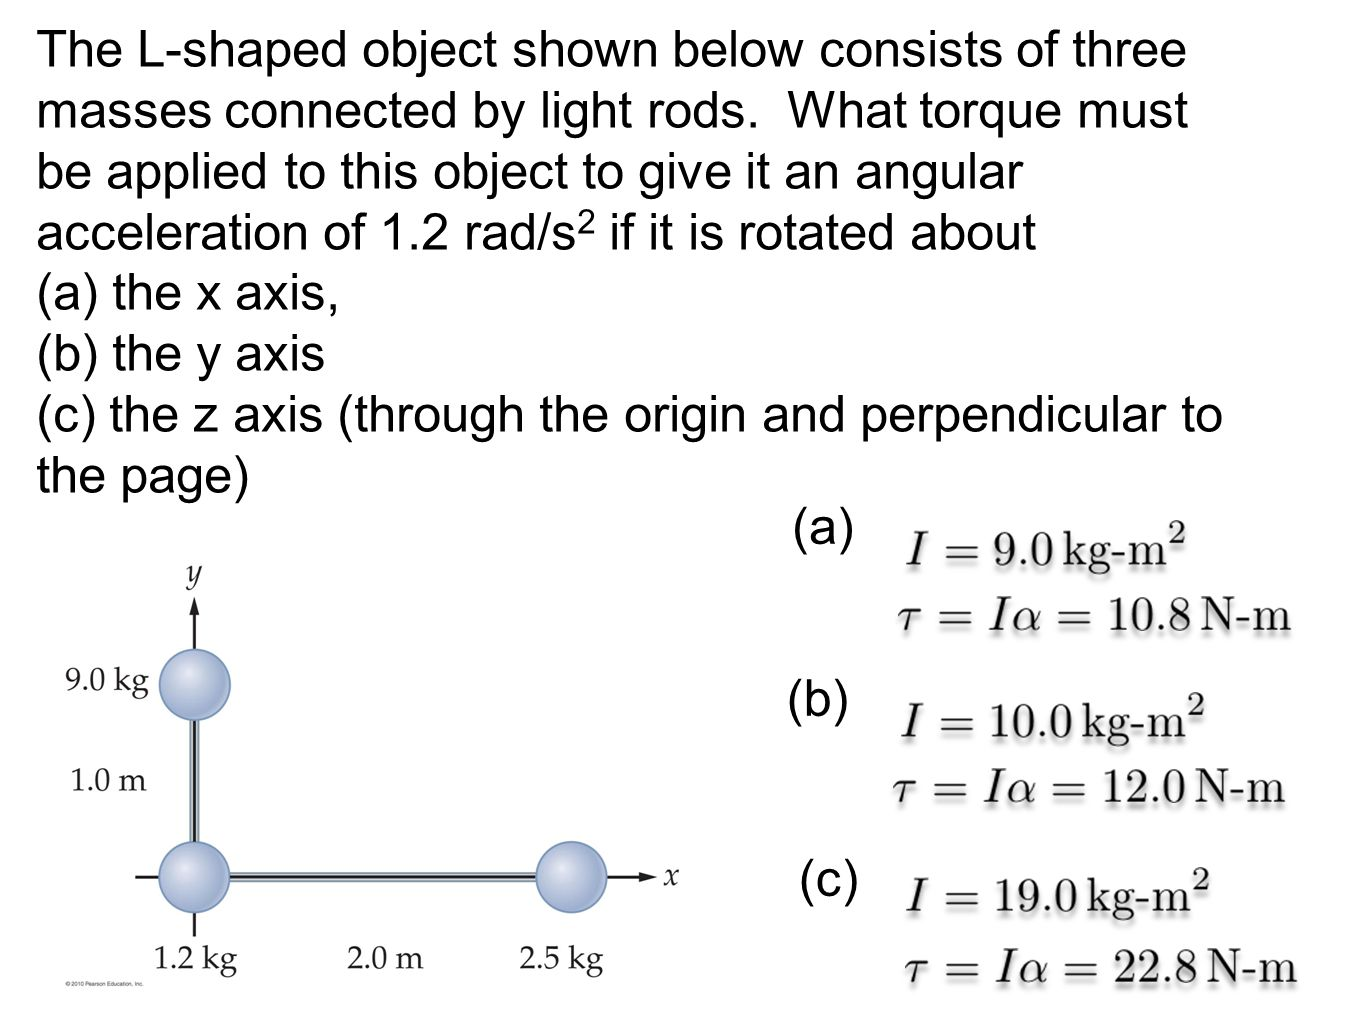 The L-shaped object shown below consists of three masses connected by light rods. What torque must be applied to this object to give it an angular acc